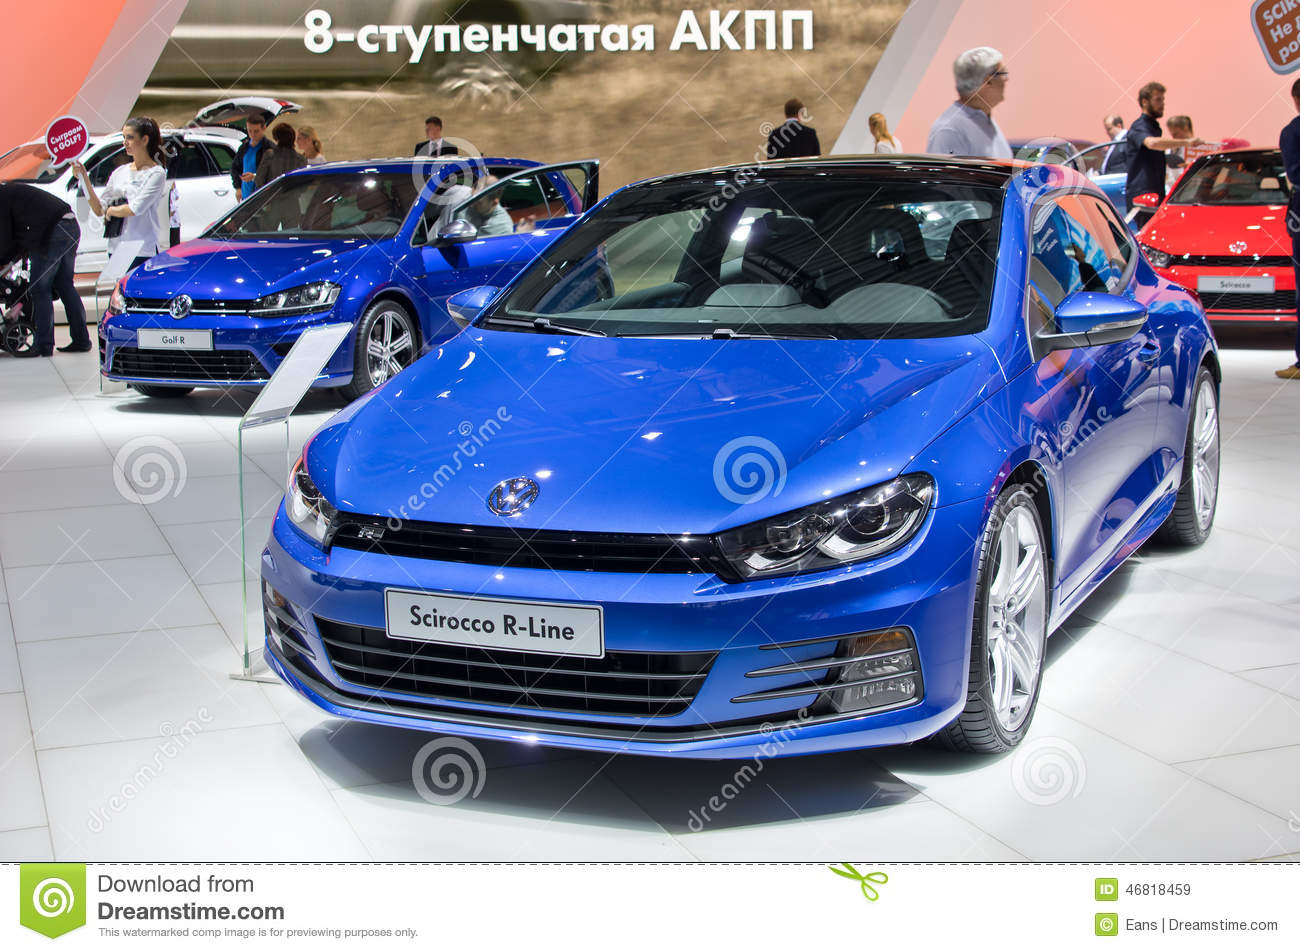 volkswagen scirocco r line redaktionelles stockbild bild von automobil 46818459. Black Bedroom Furniture Sets. Home Design Ideas